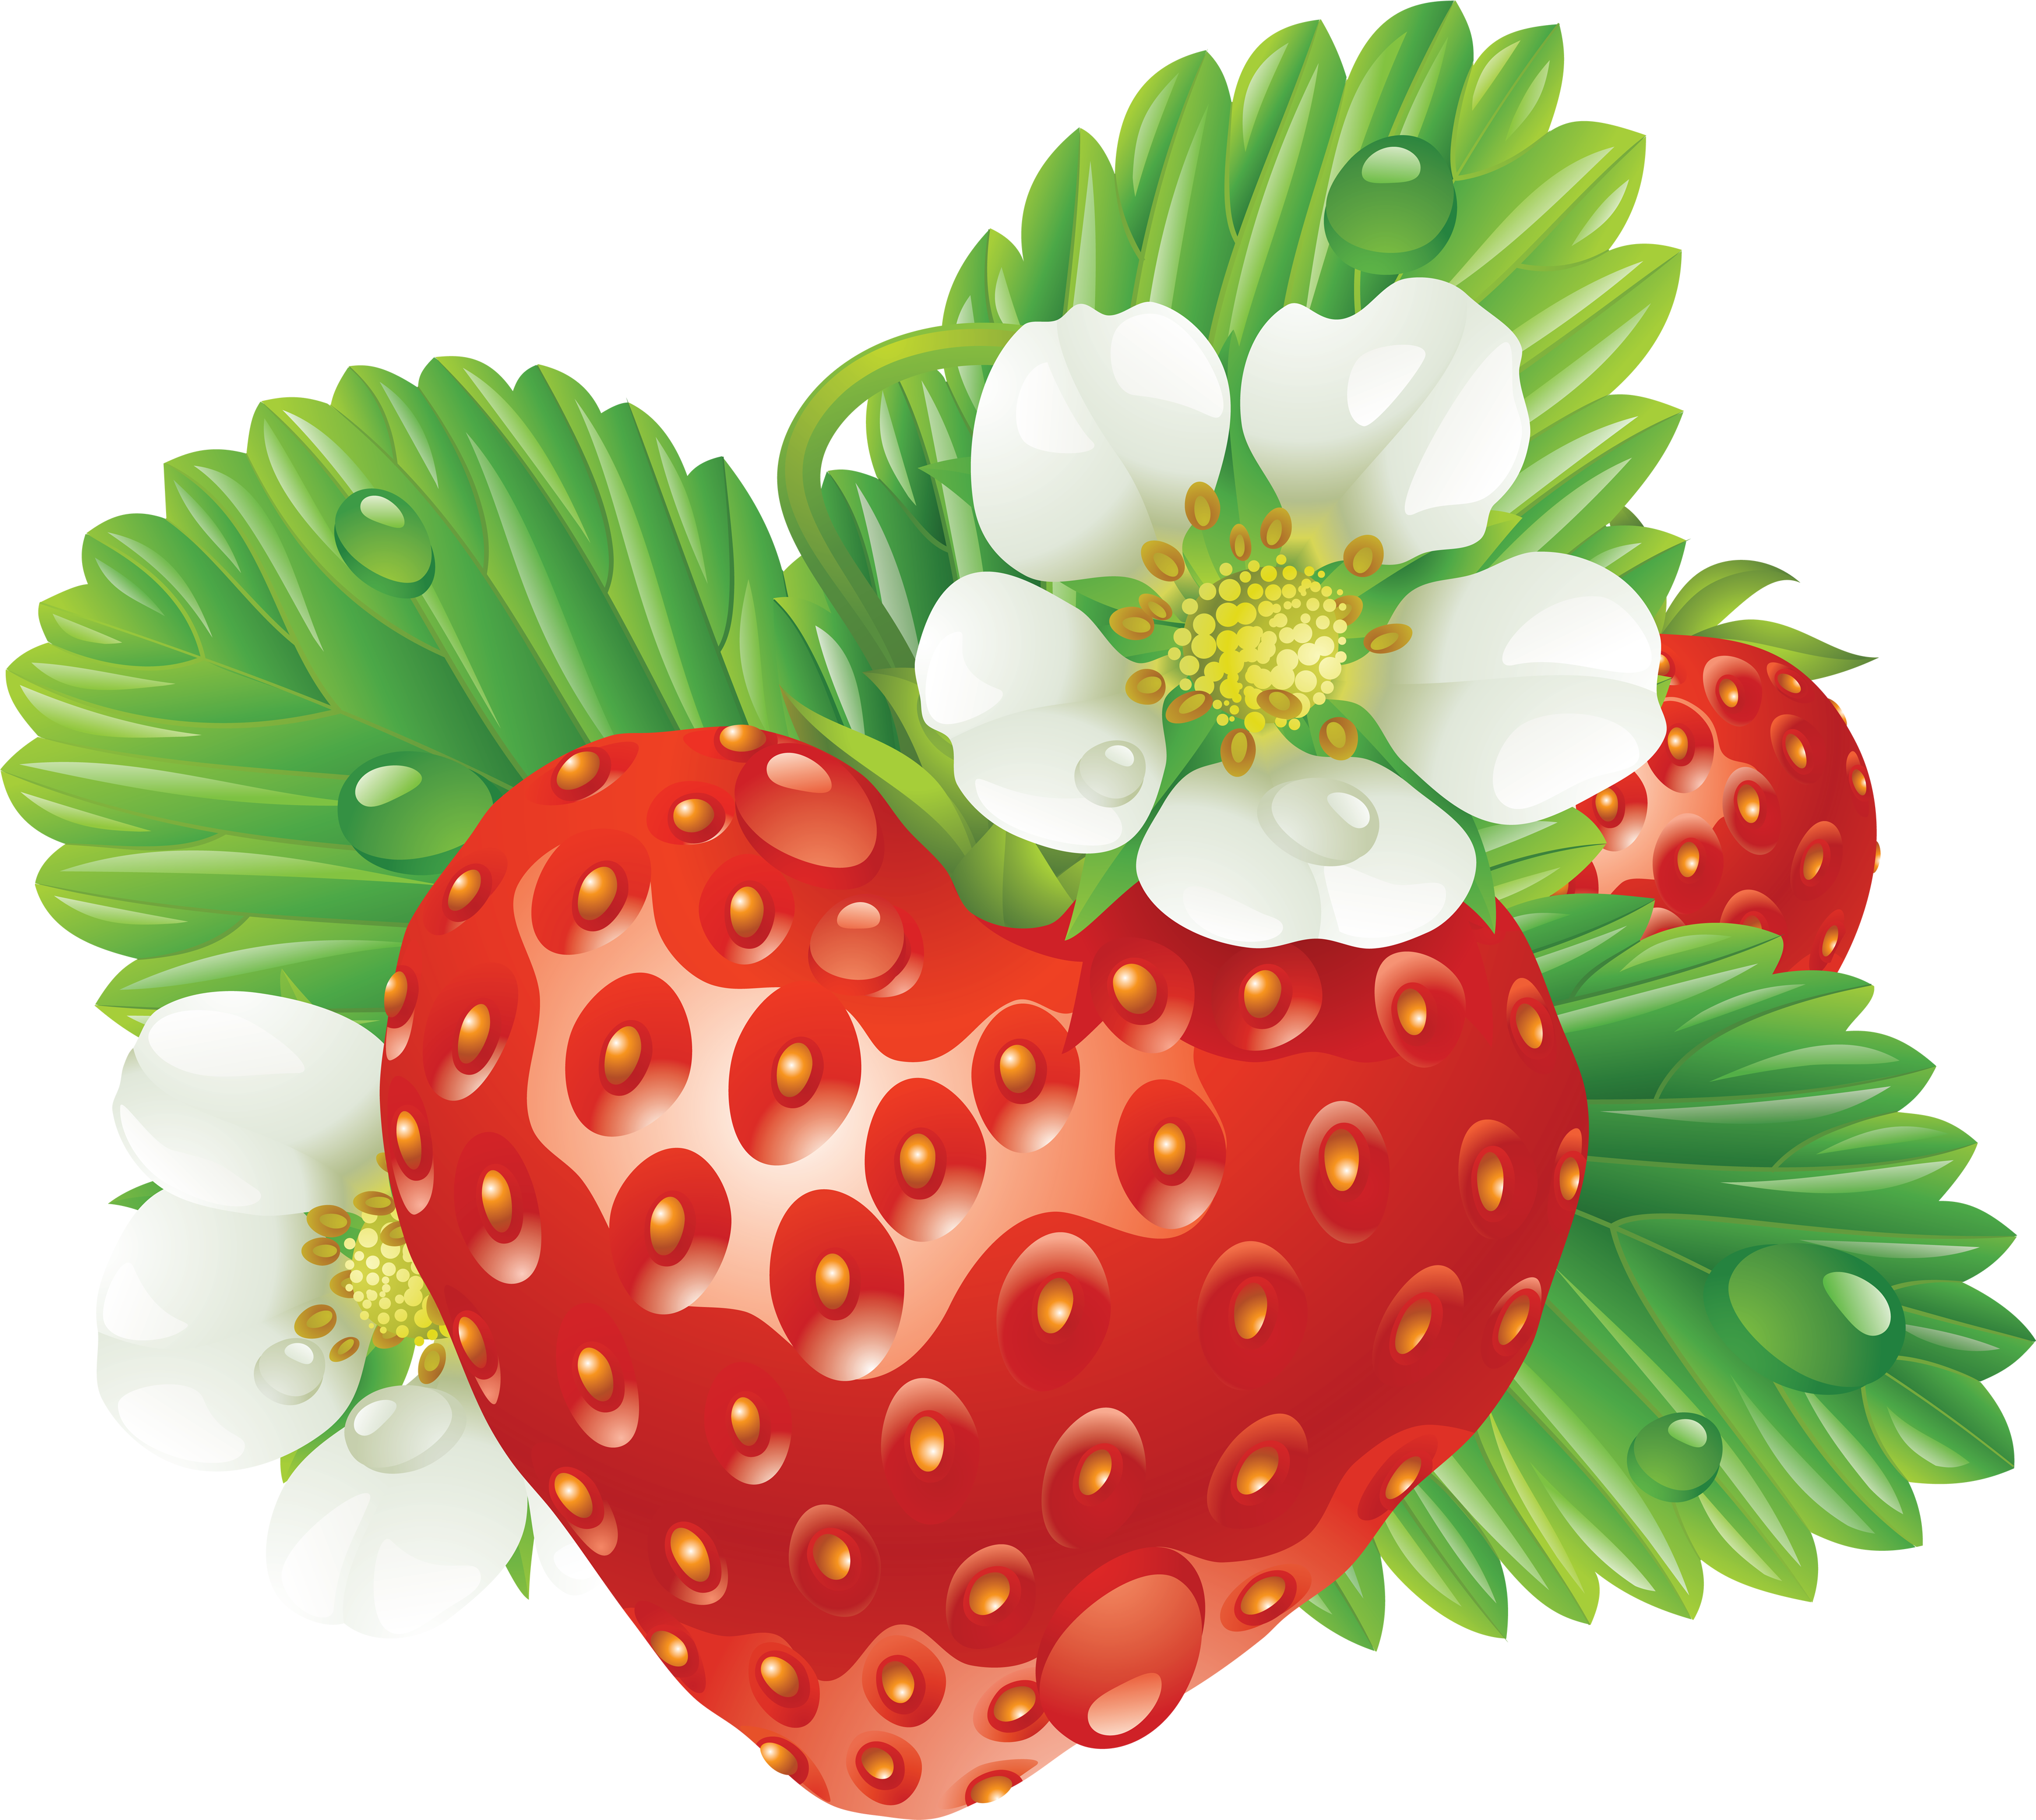 Strawberry Heart-Shaped PNG Image